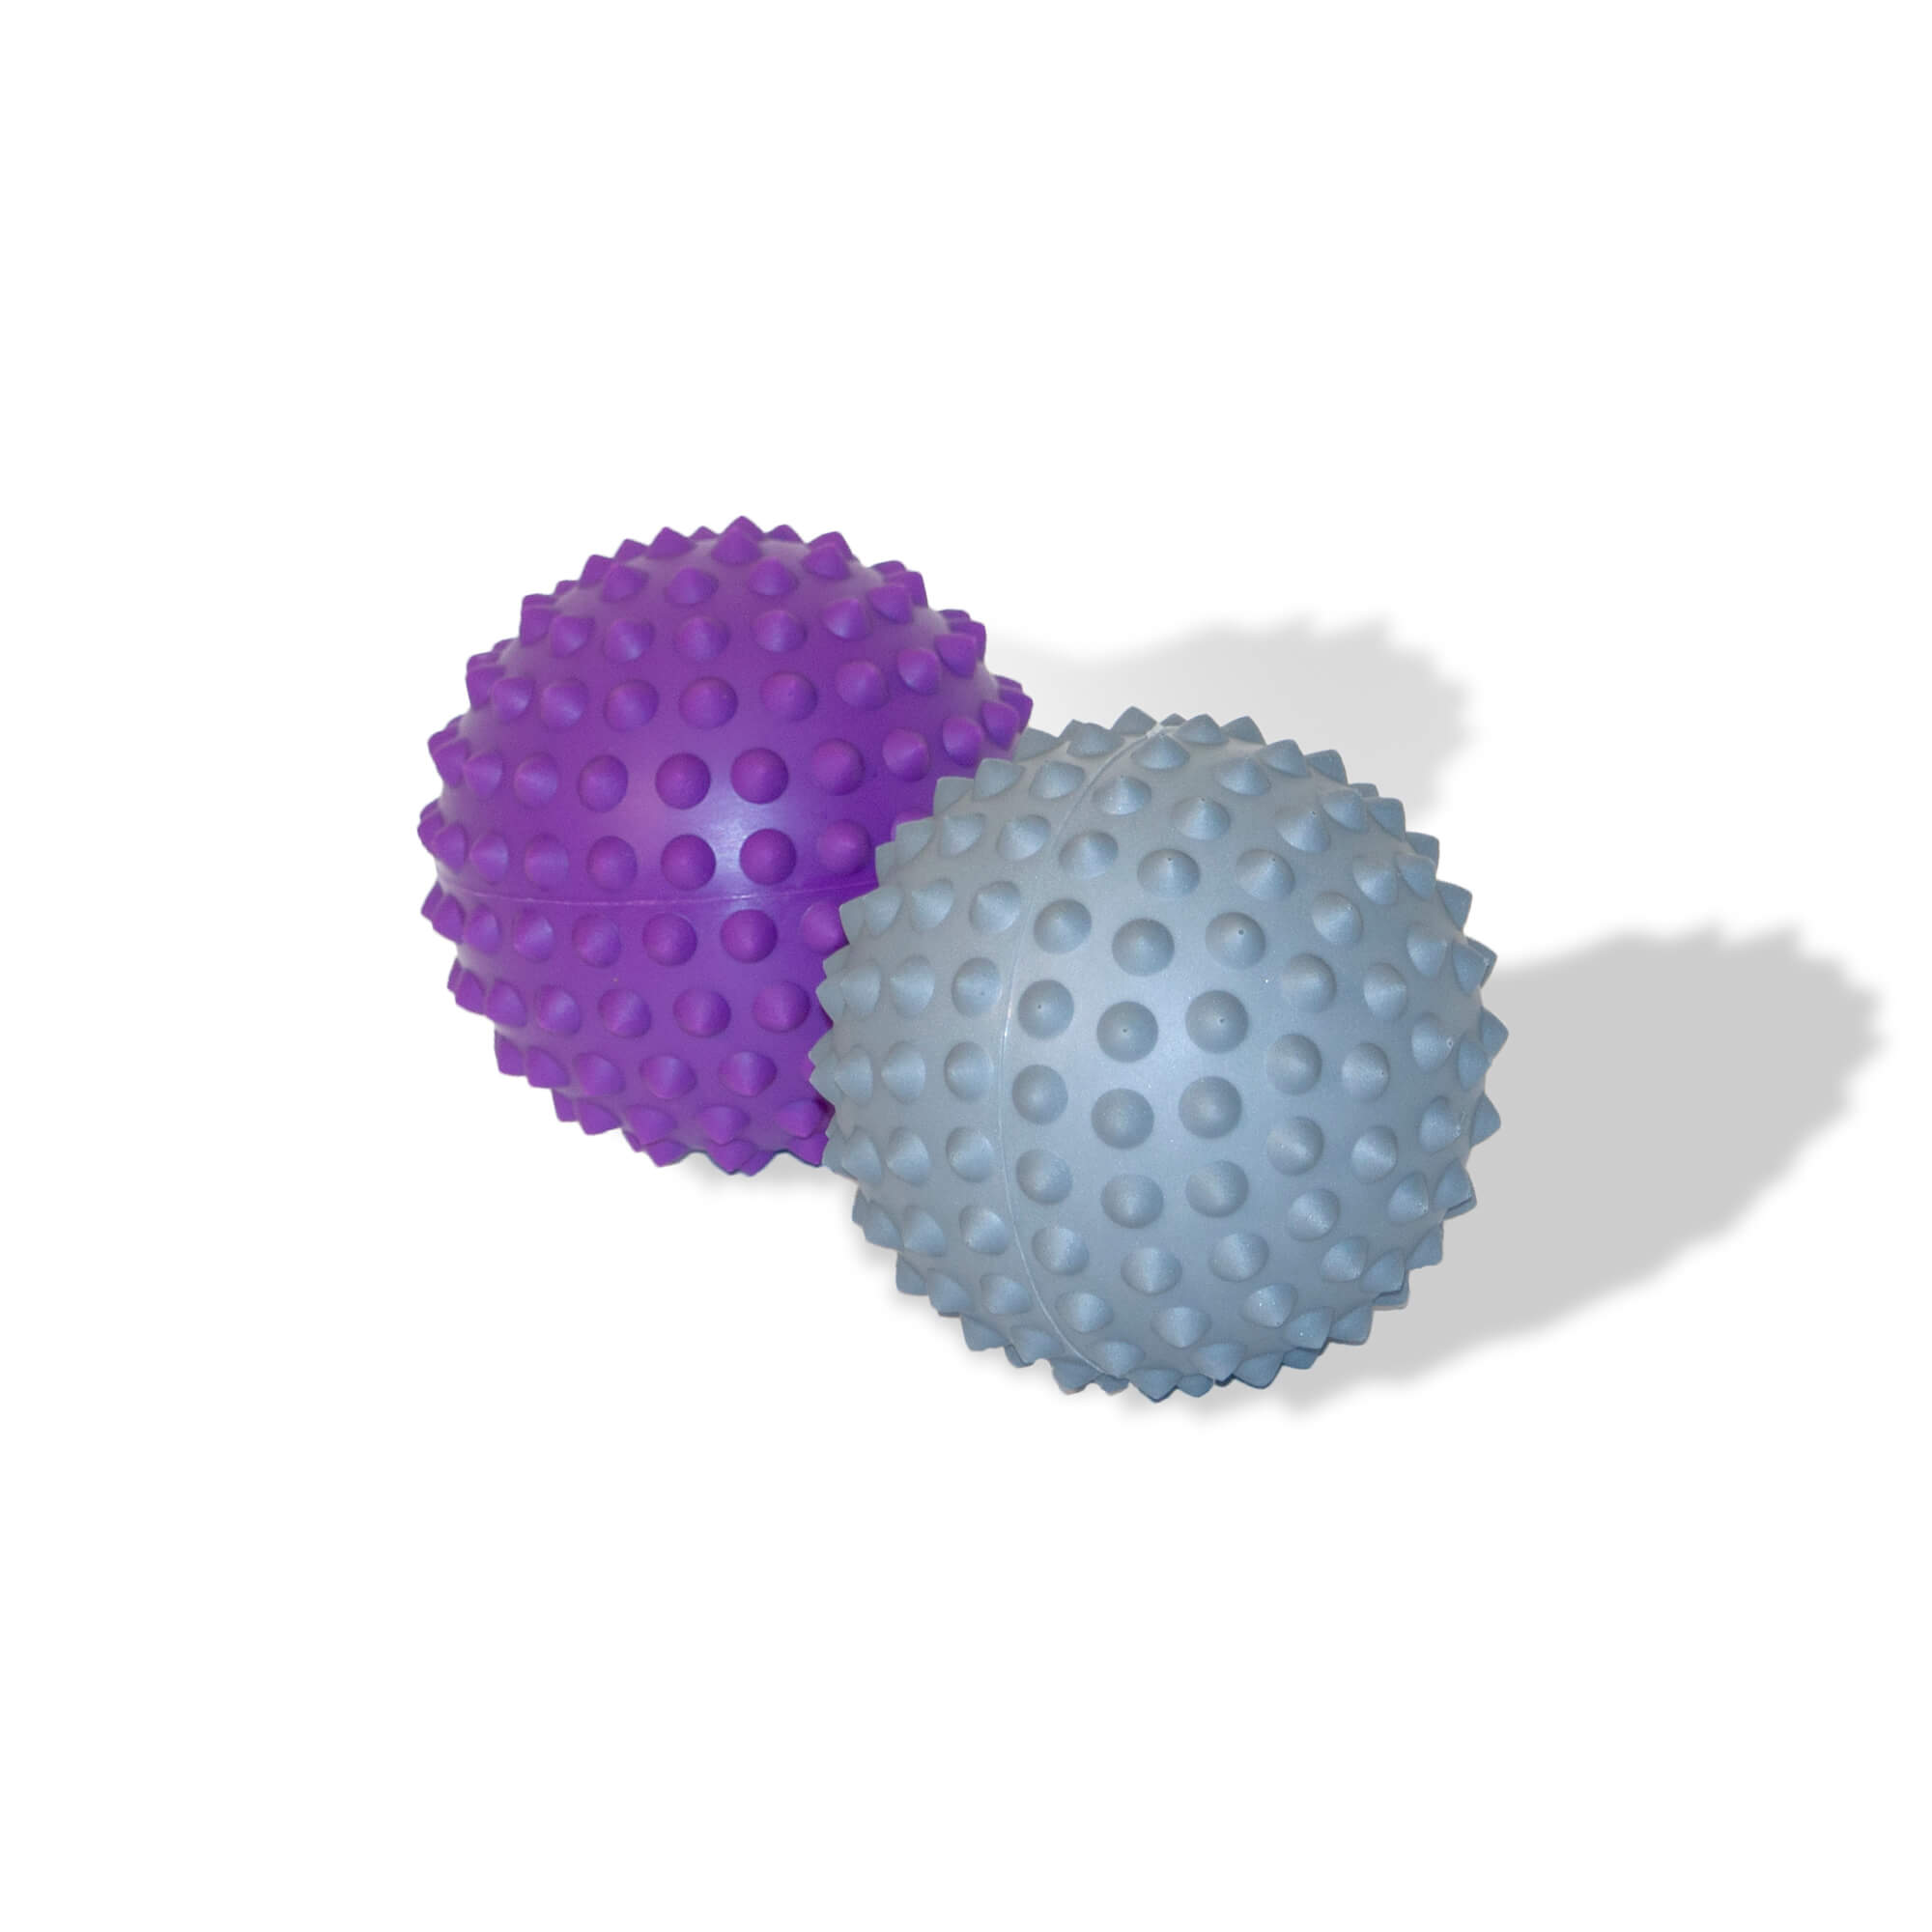 Prickle Stimulating Balls 10 ball value pack-Purple and Grey